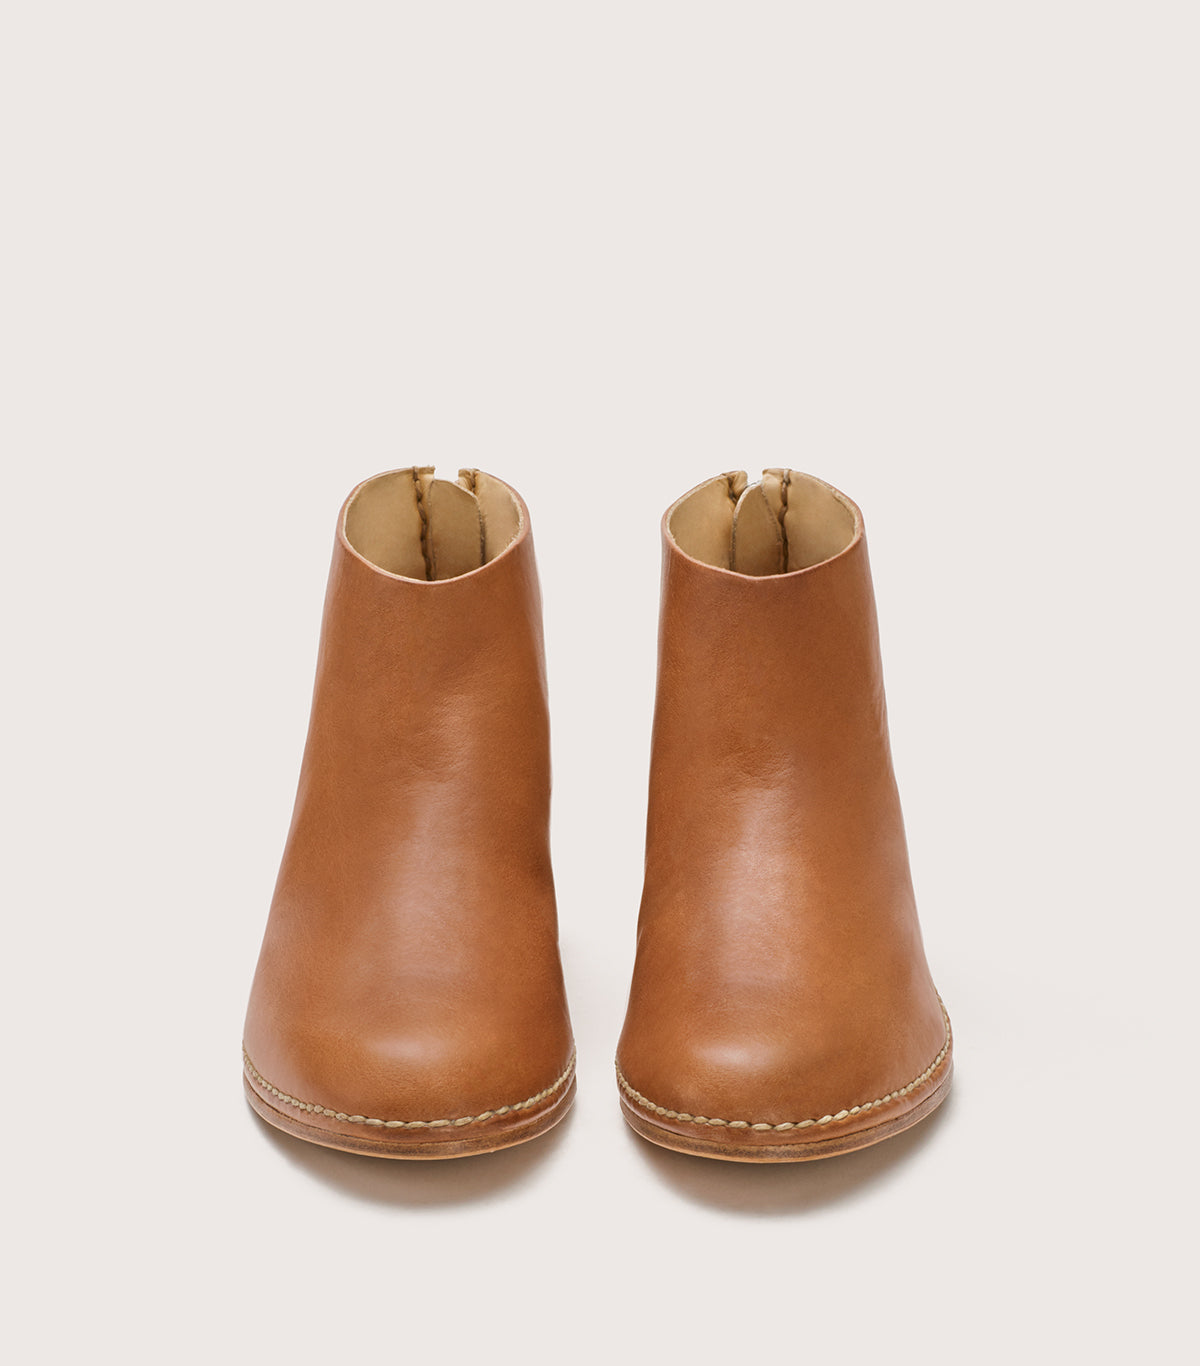 CEREMONIAL MID HEEL BOOT - WFCERMHBTH_TAN